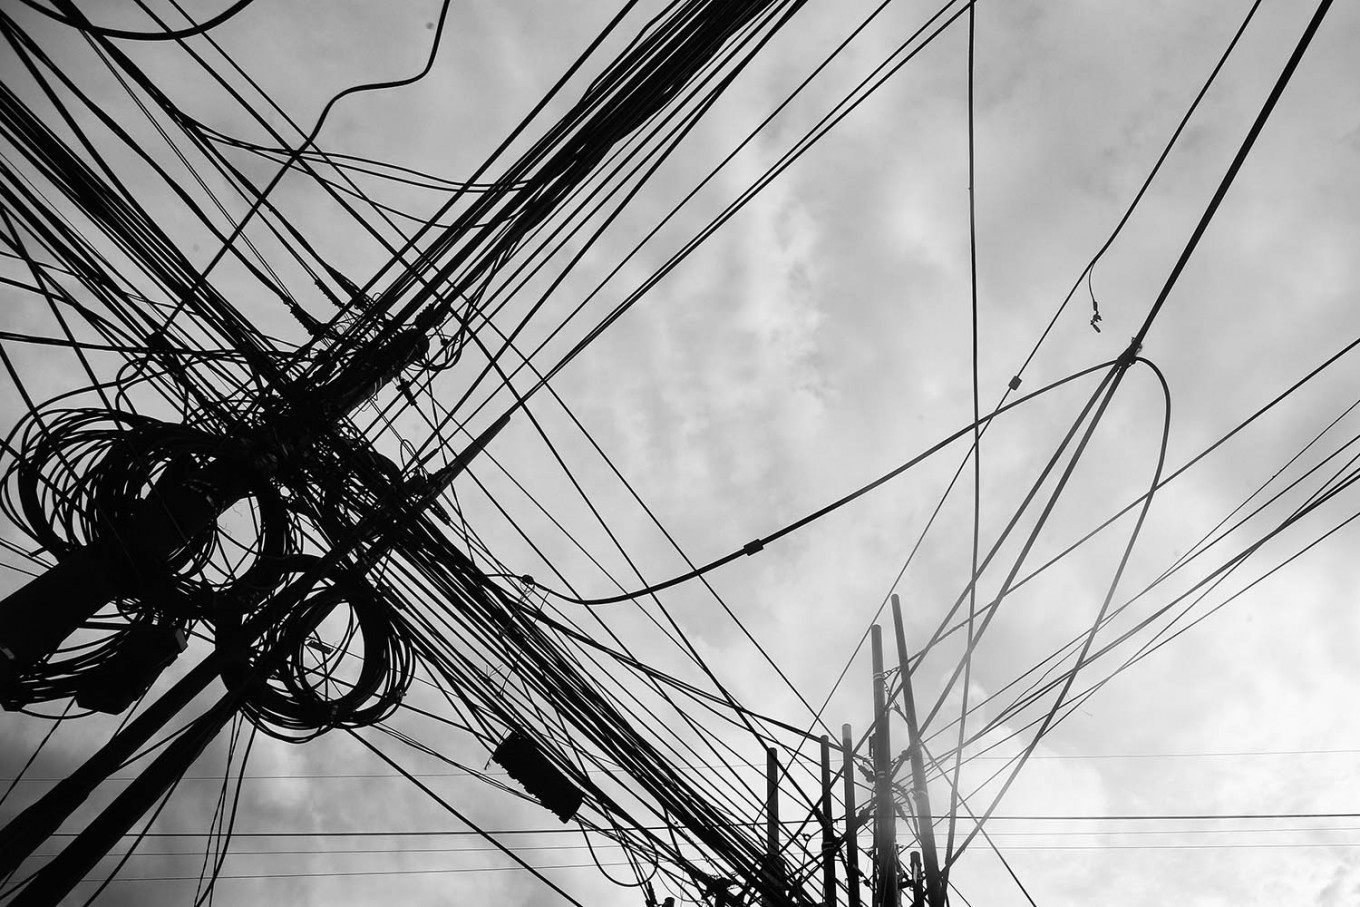 Complicated: Tangled cables are seen on Jl Samanhudi in Central Jakarta. JP/ Dhoni Setiawan